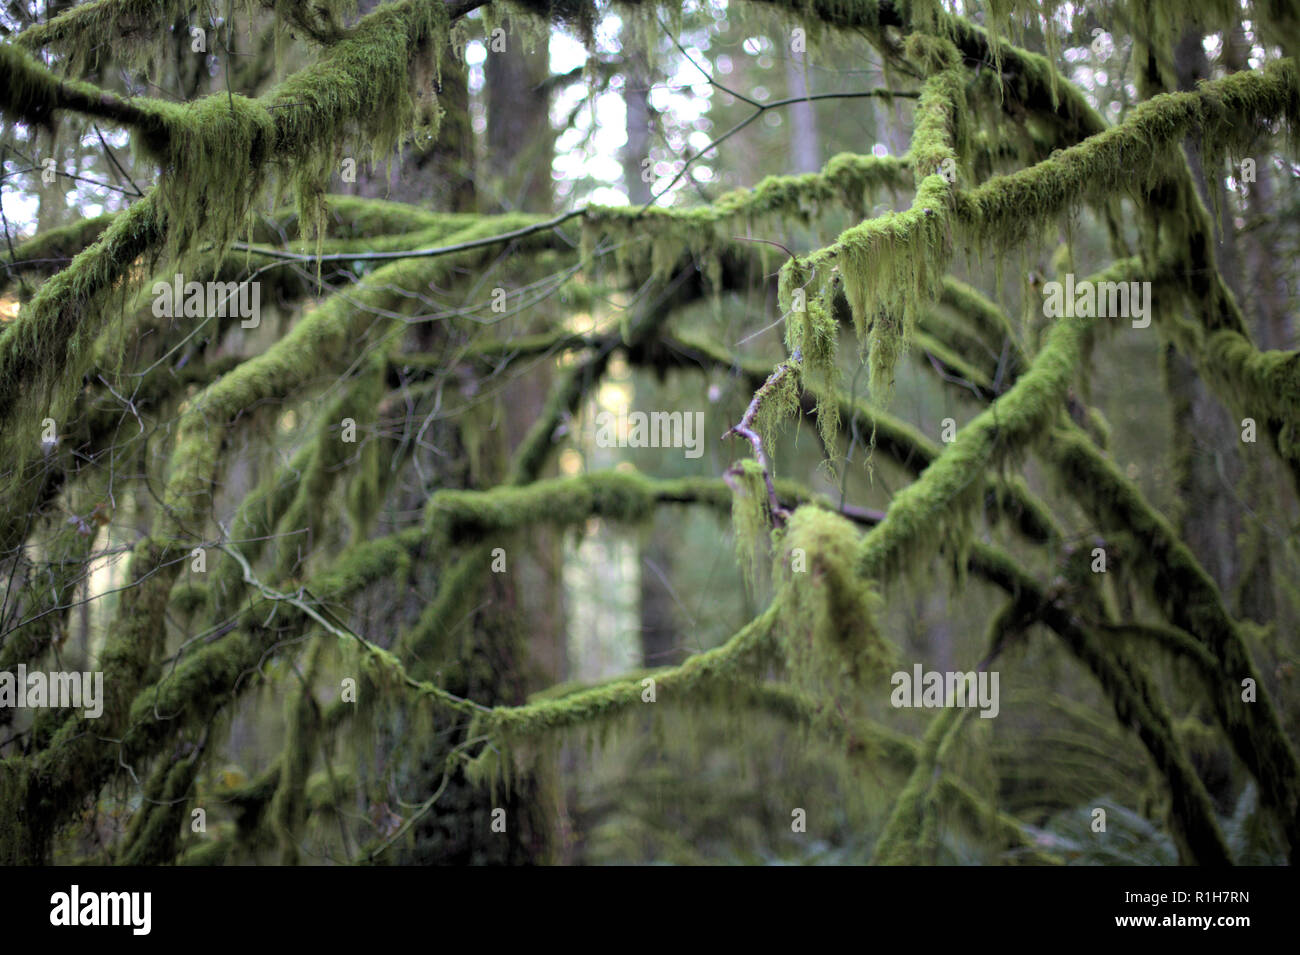 Moss-covered green branches in the humid forest of Eagle Mountain, Anmore, BC, Canada, in autumn, with a bright white background - Stock Image